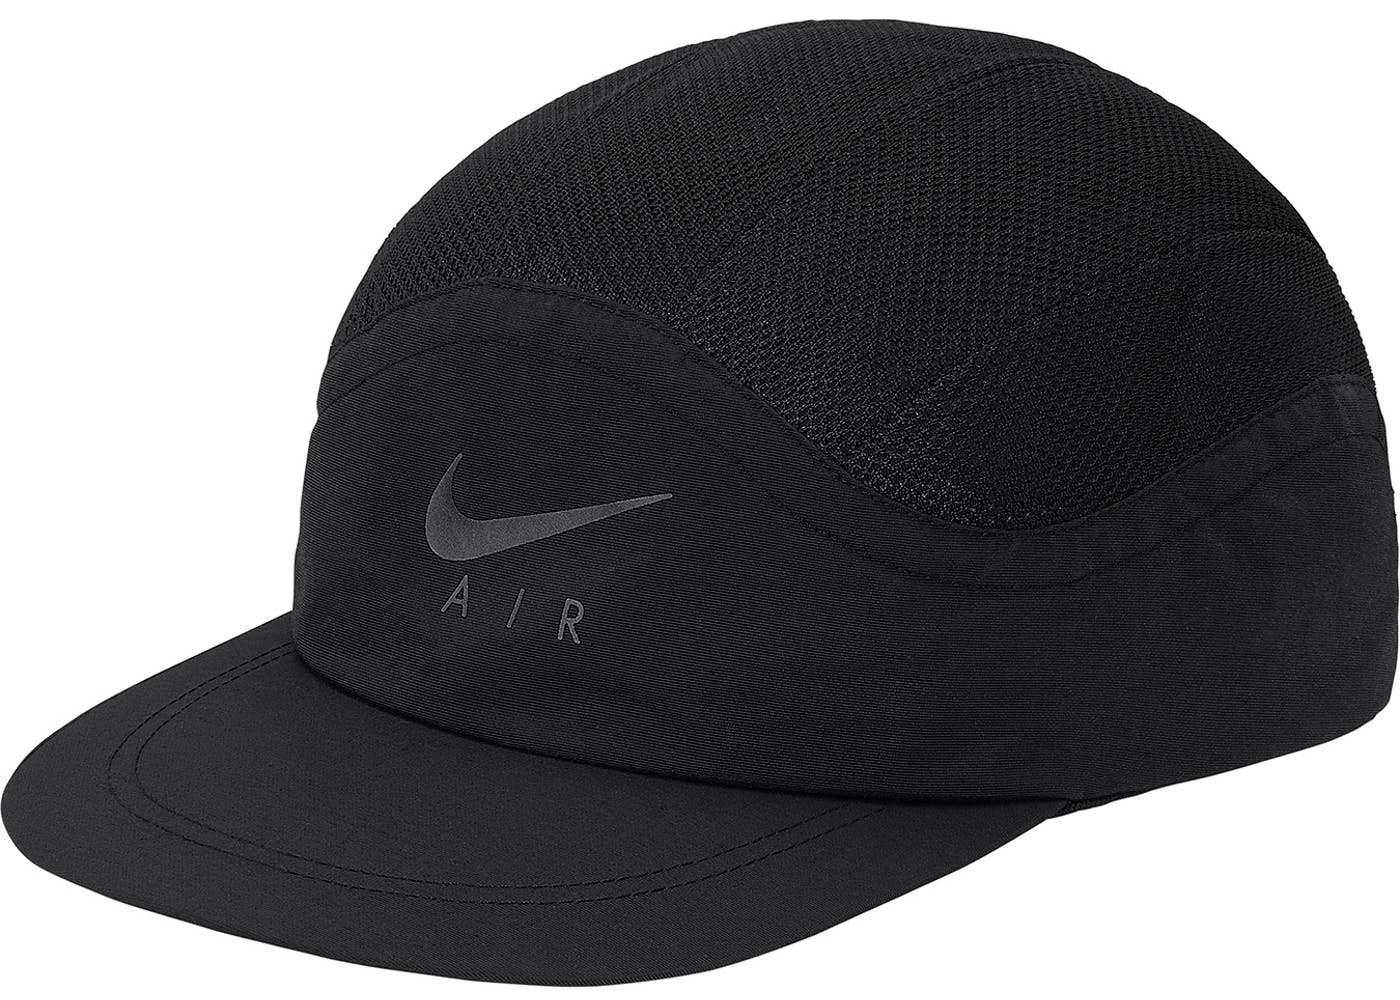 Supreme Nike Trail Running Hat Black